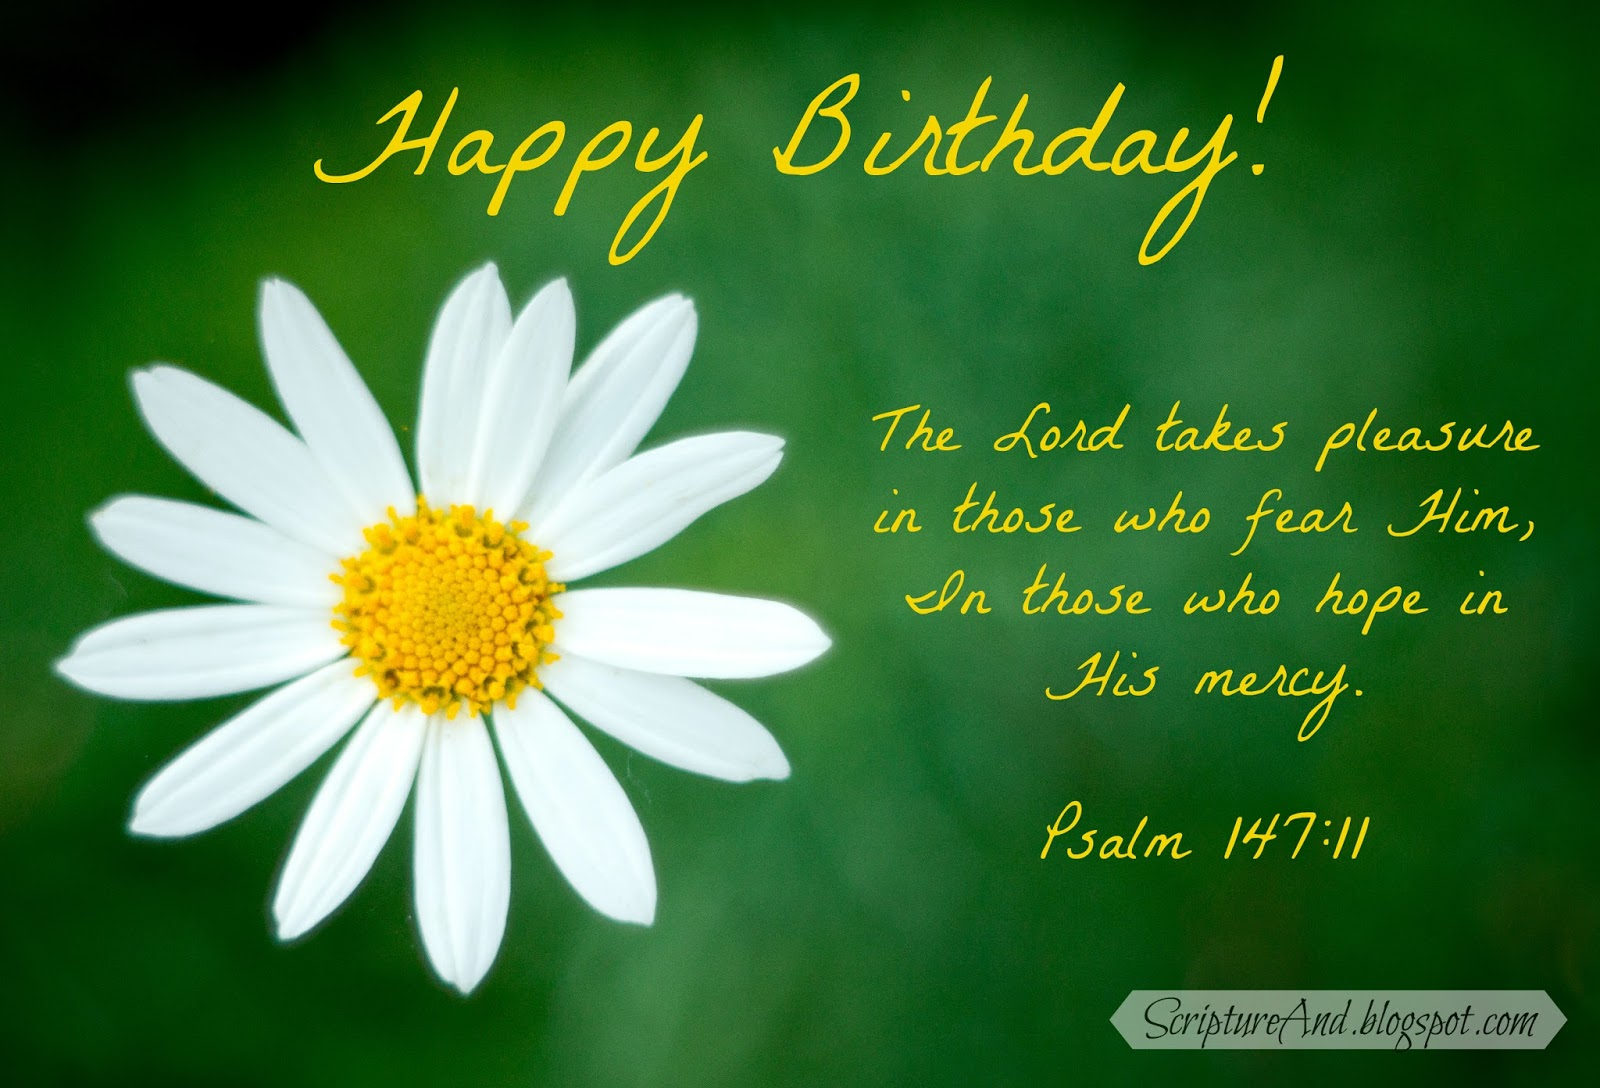 Scripture and free birthday images with bible verses happy birthday image with daisy and psalm 14711 from scriptureandspot kristyandbryce Gallery